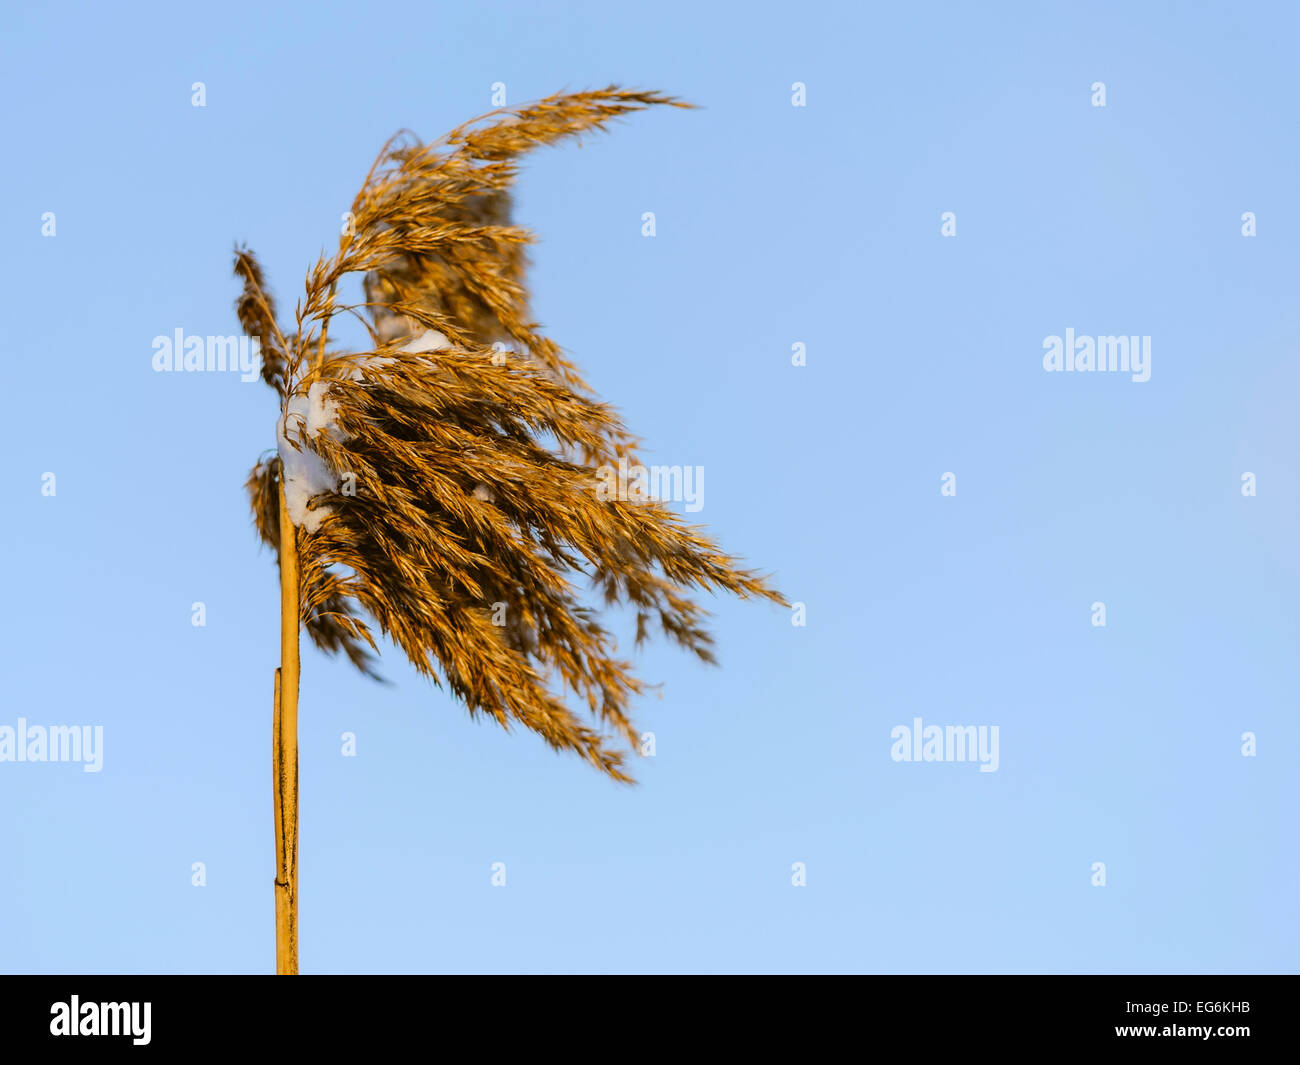 Reed closeup in sunset, snowy, blue sky in background. Stock Photo